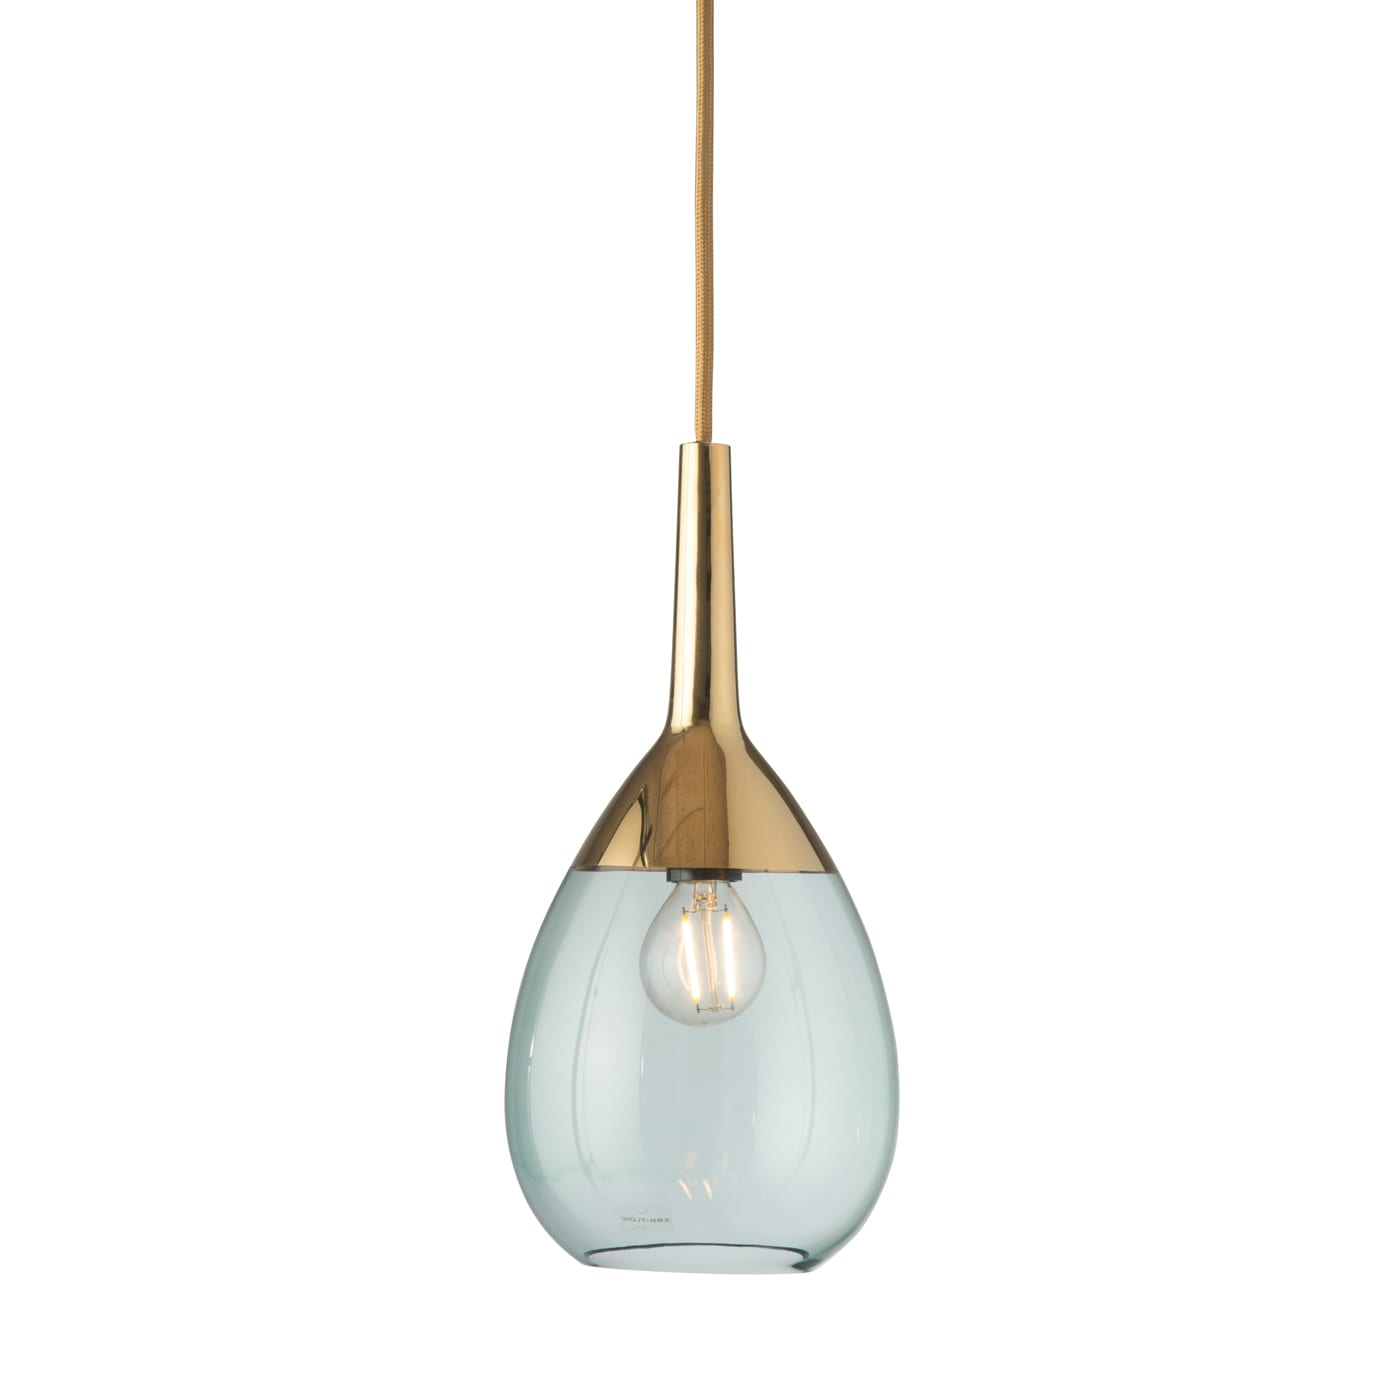 Lute Pendant Lamp, Green / Gold, 27cmH